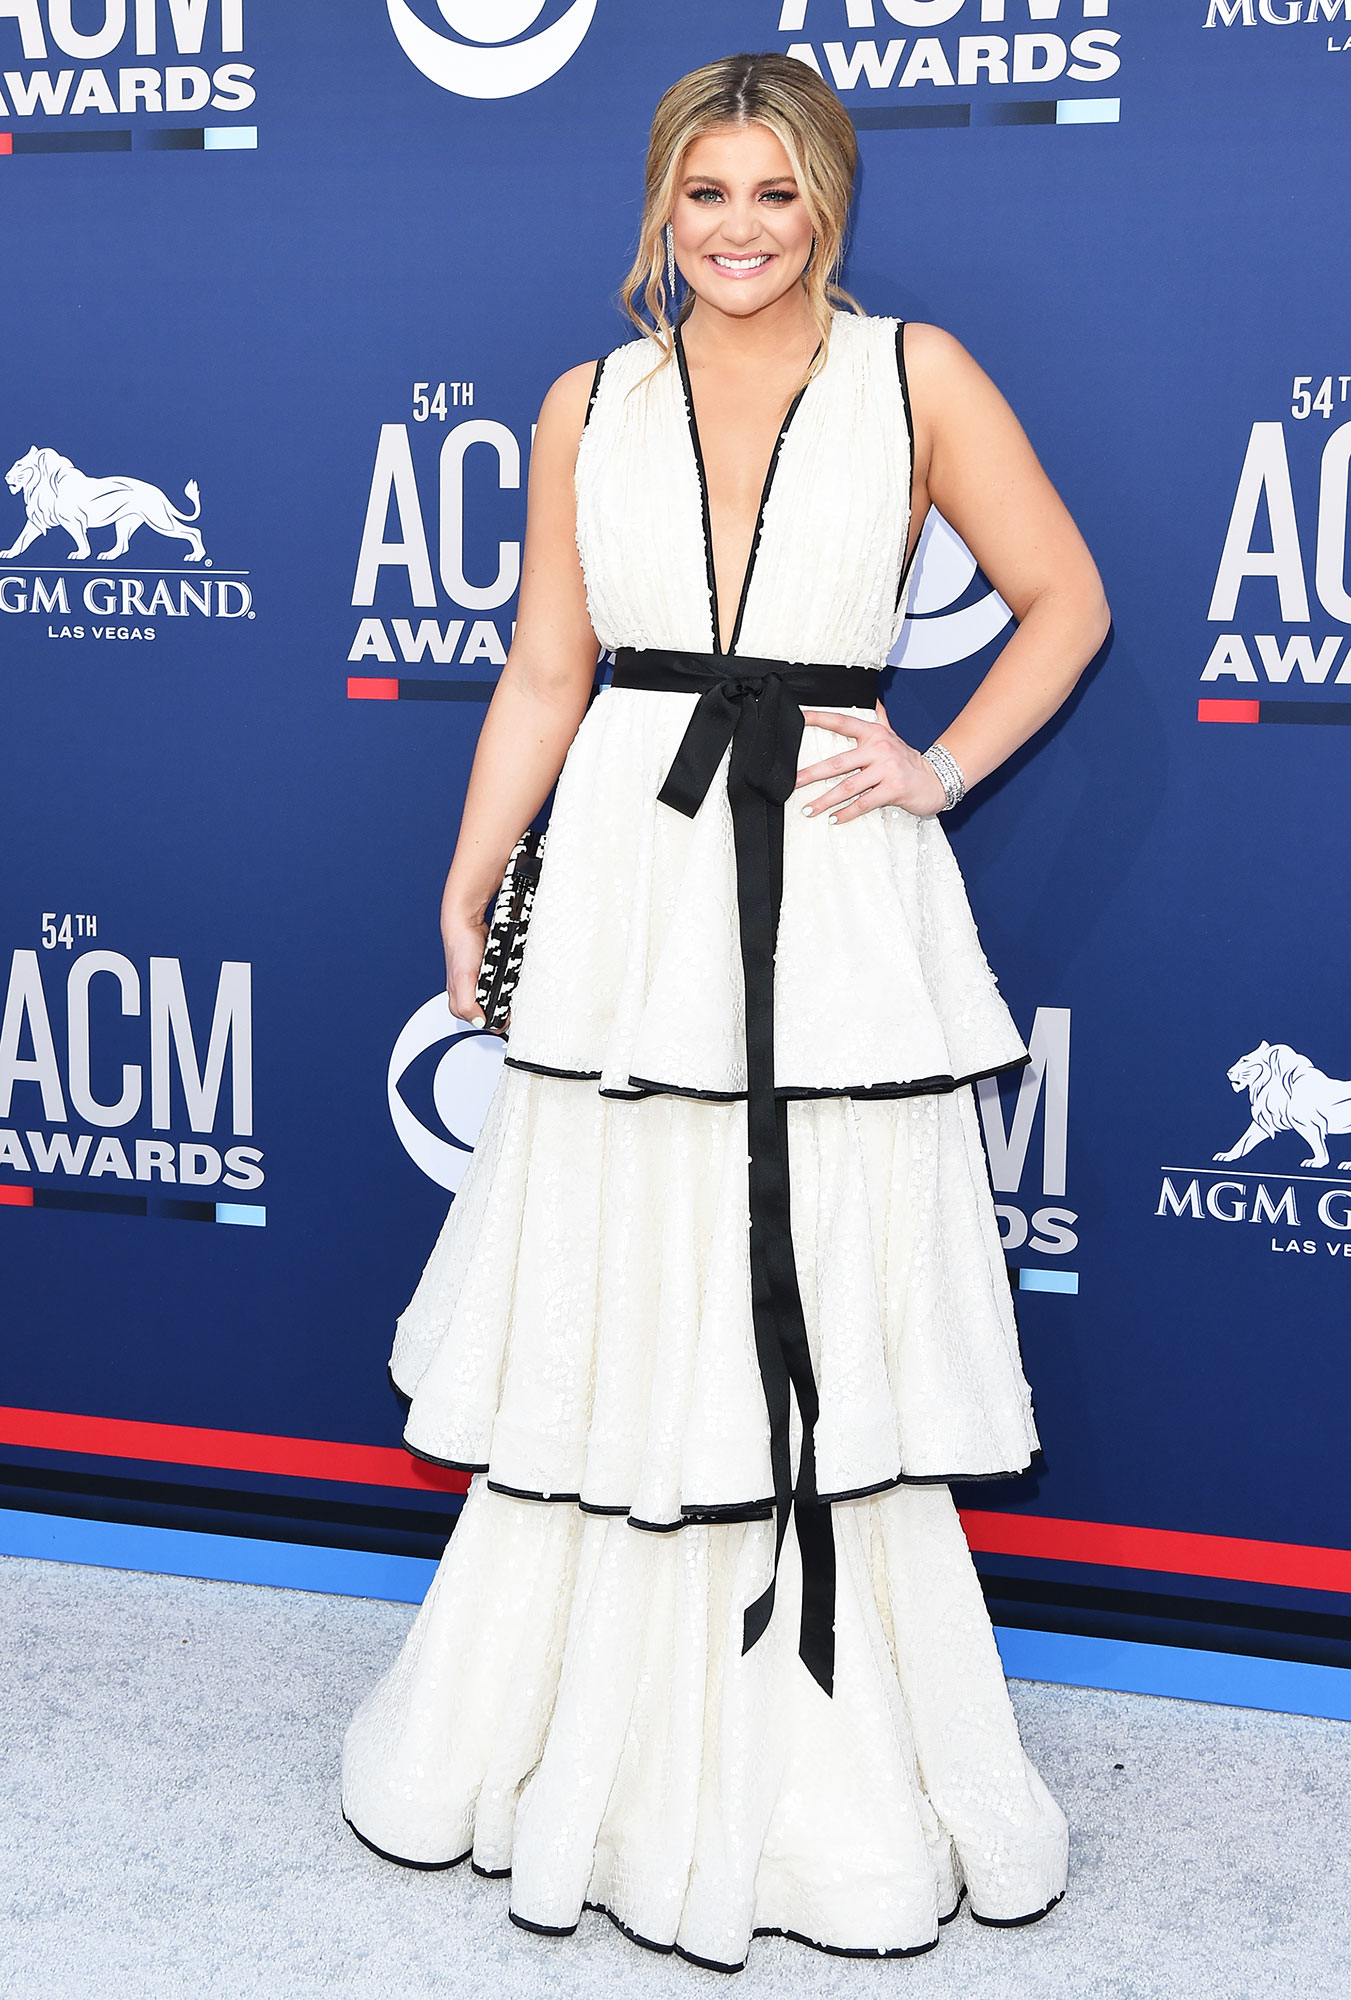 Lauren Alaina The Best Looks From the Country Music Awards Red Carpet - The blonde beauty looked like a goddess in her white ruffled ballgown.